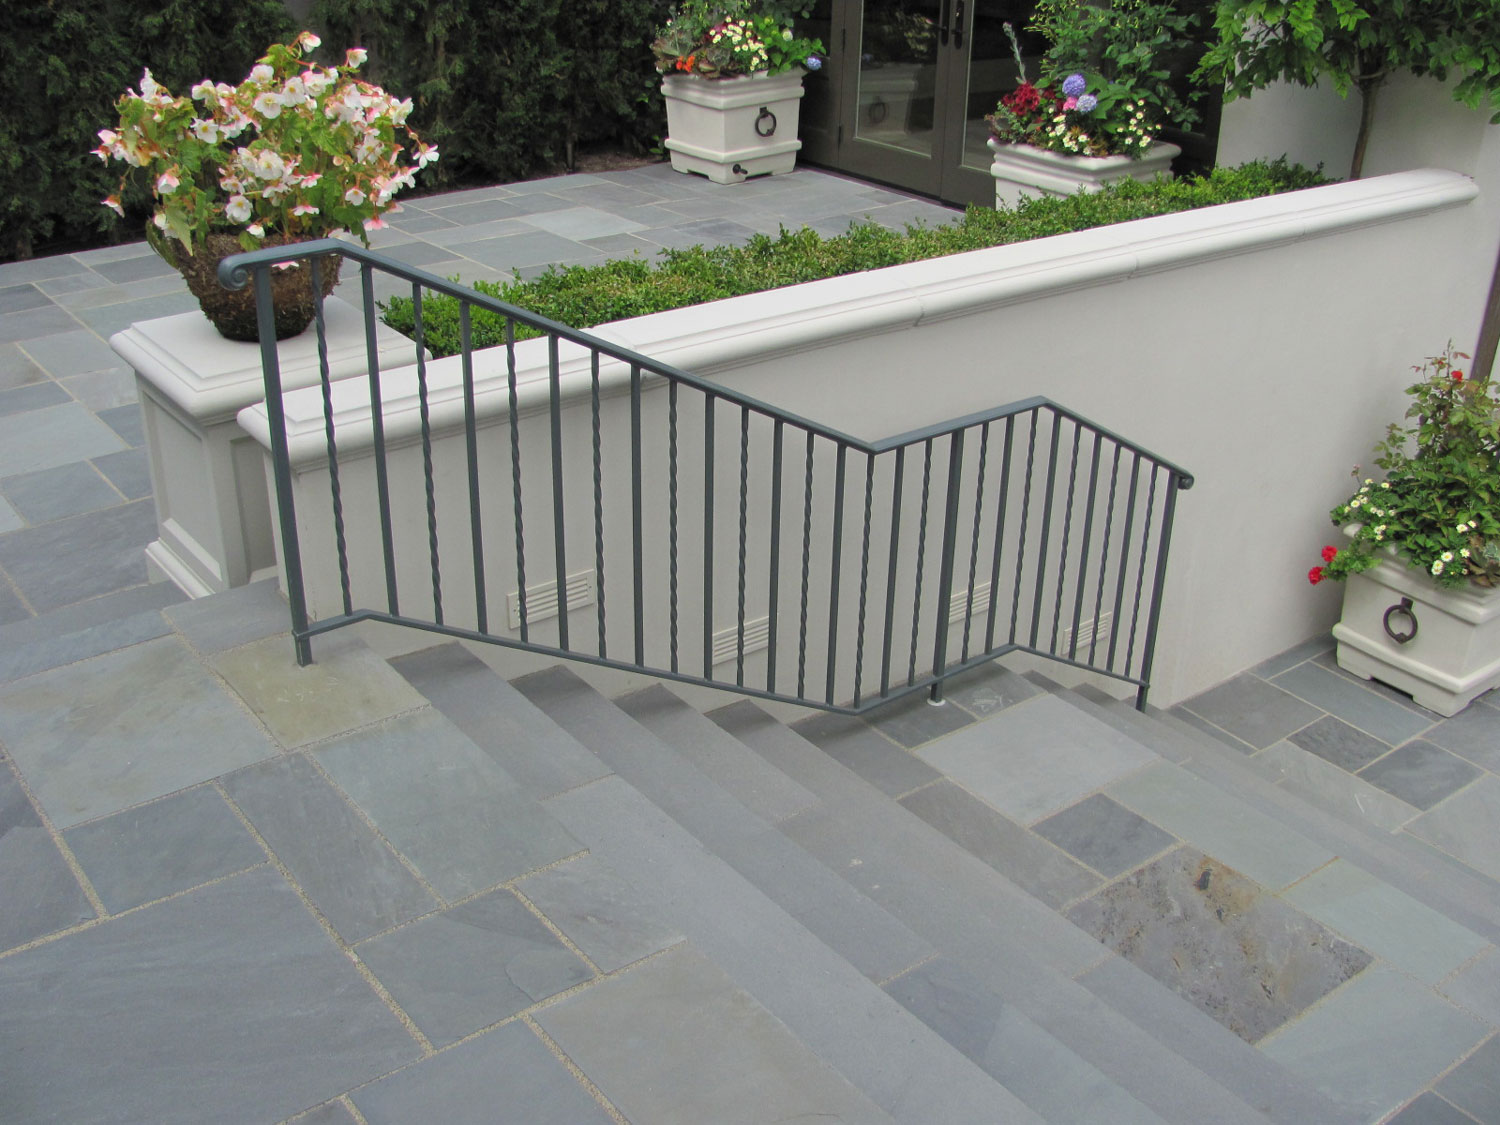 Iron Handrails and Guardrails for Slate Patio - Stairs - Seattle, WA